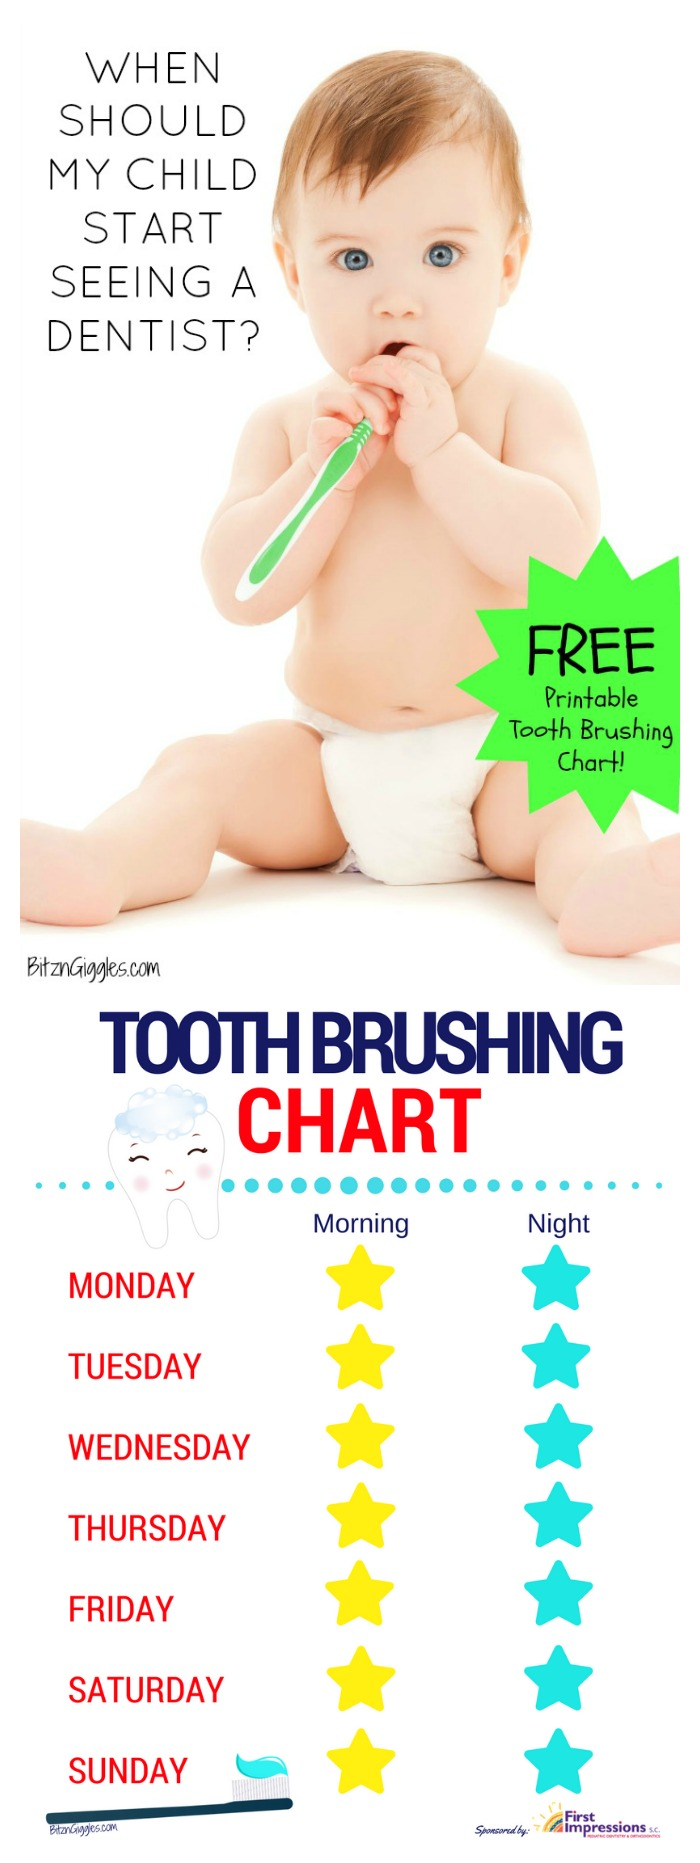 When Should My Child Start Seeing a Dentist? - Tips on caring for your child's teeth and a free printable tooth brushing chart to make brushing fun and part of their daily routine!